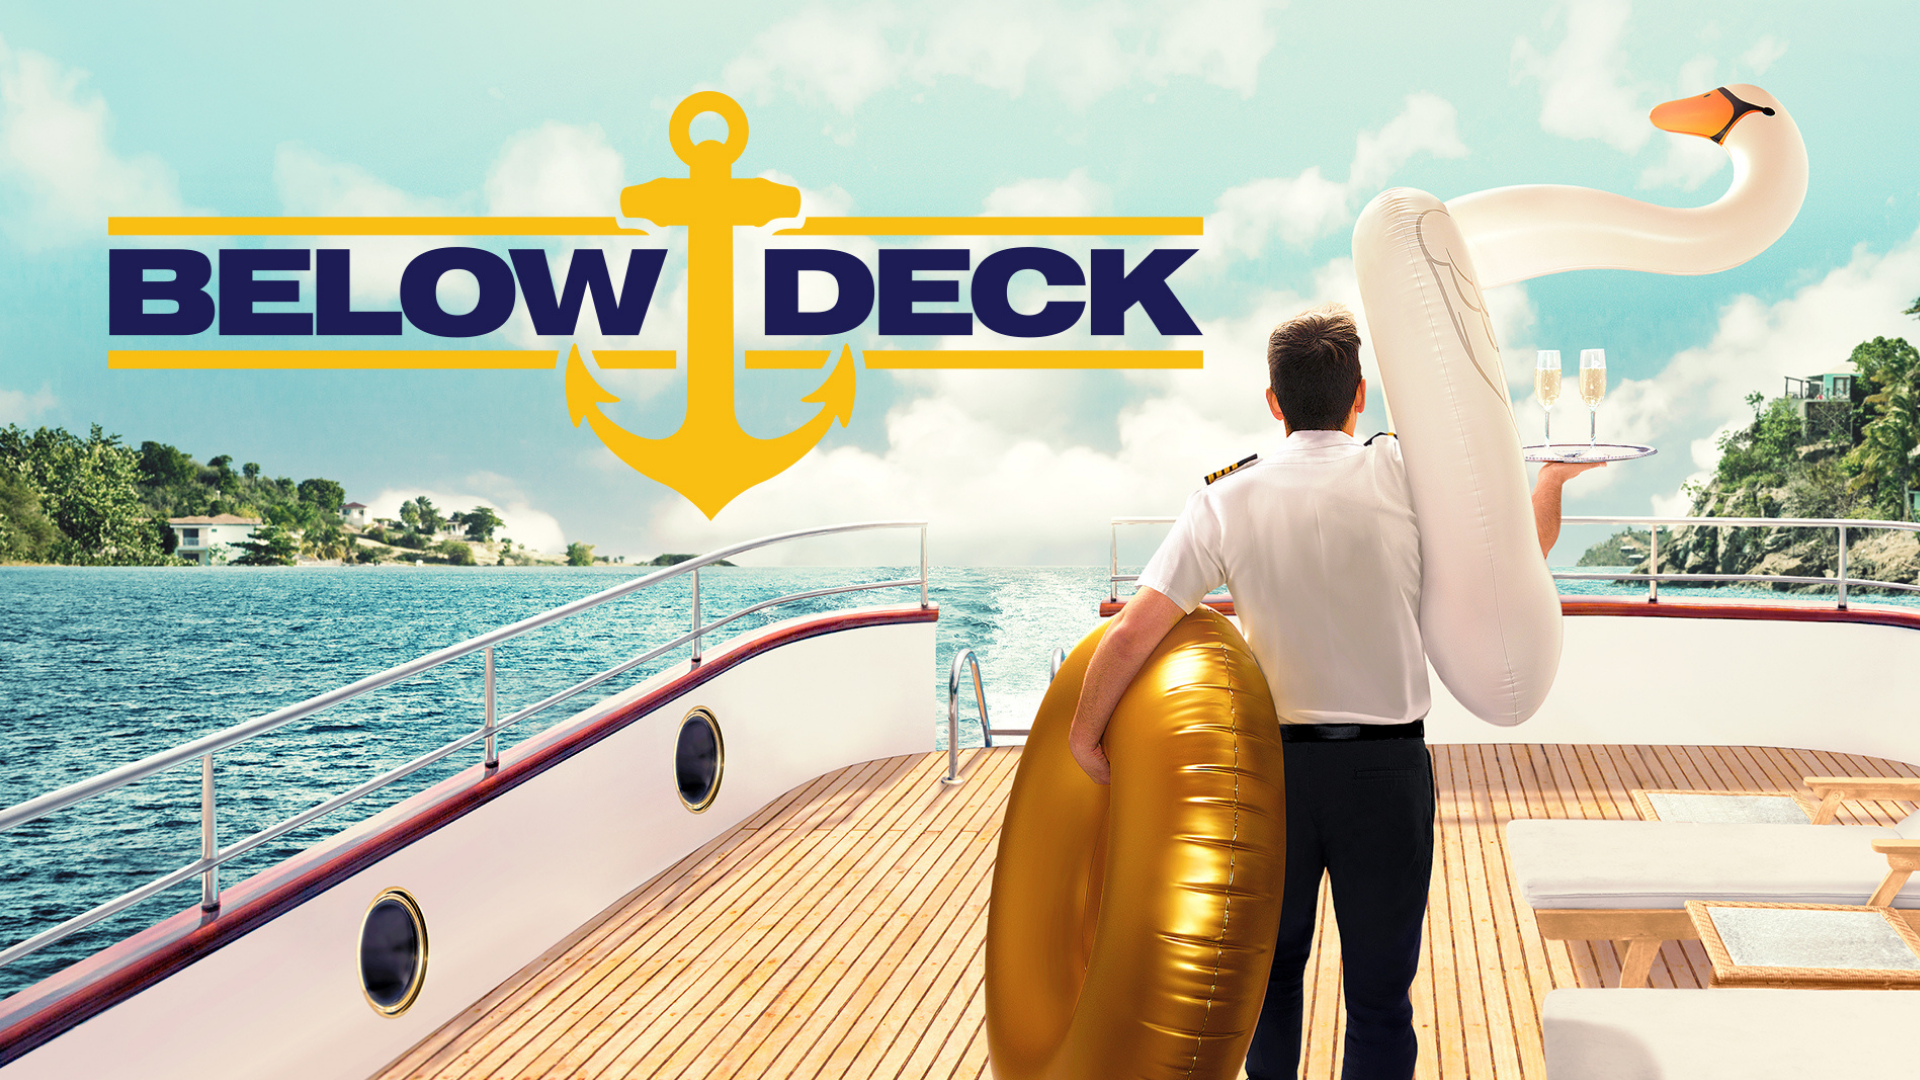 Below Deck - New Season October 25 . Go to a video page.